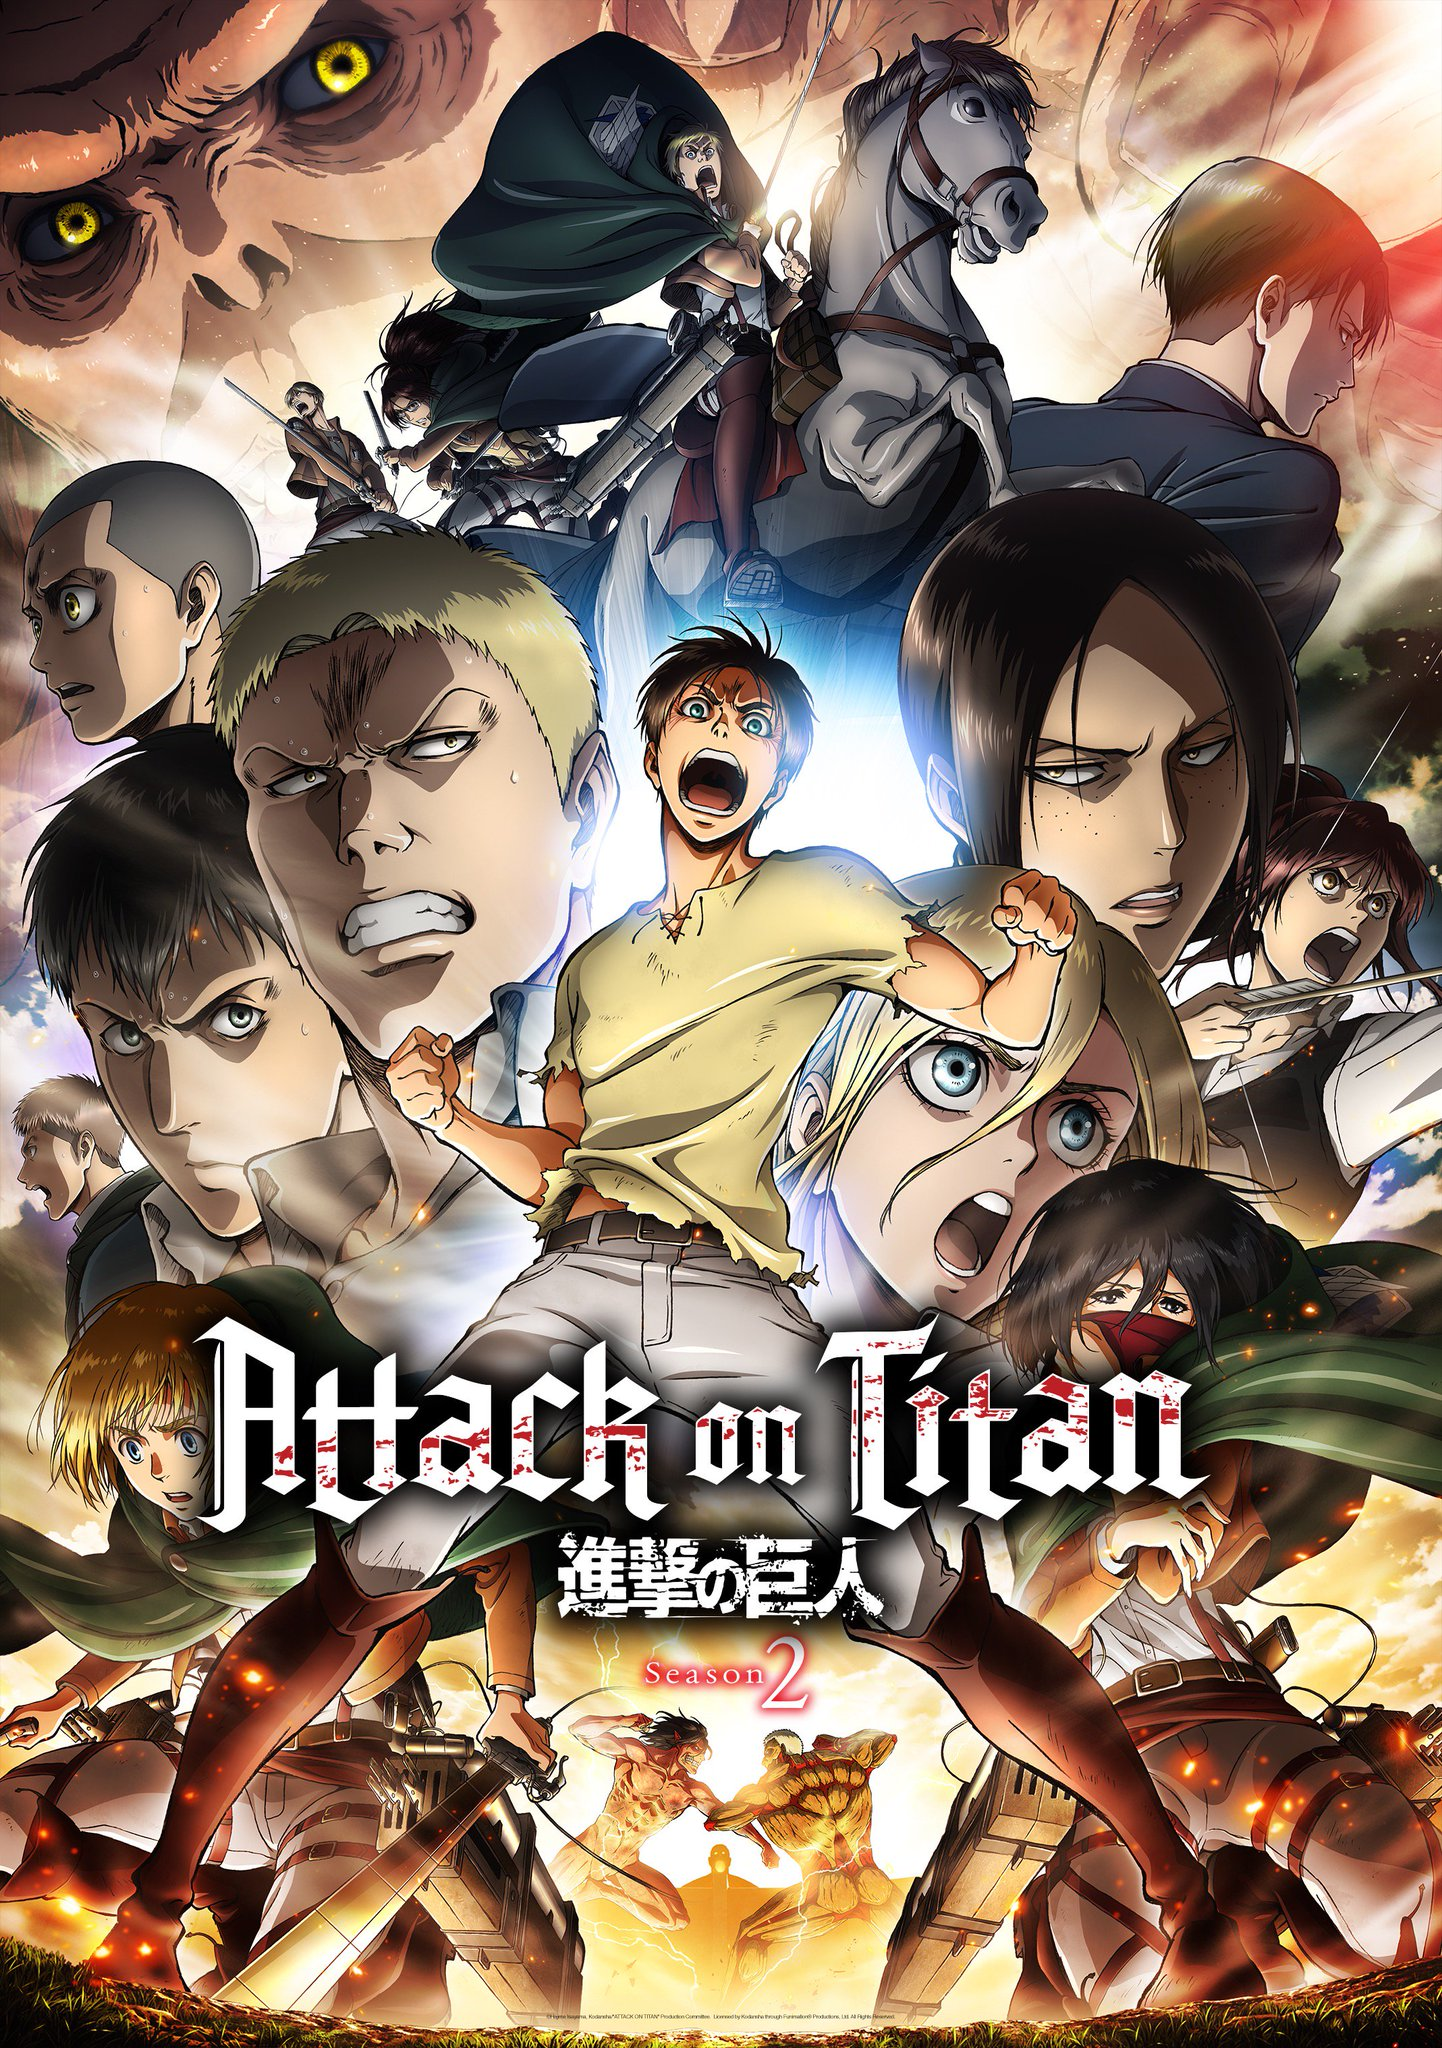 New Poster And Premiere Date For ATTACK ON TITAN Season 2 Revealed